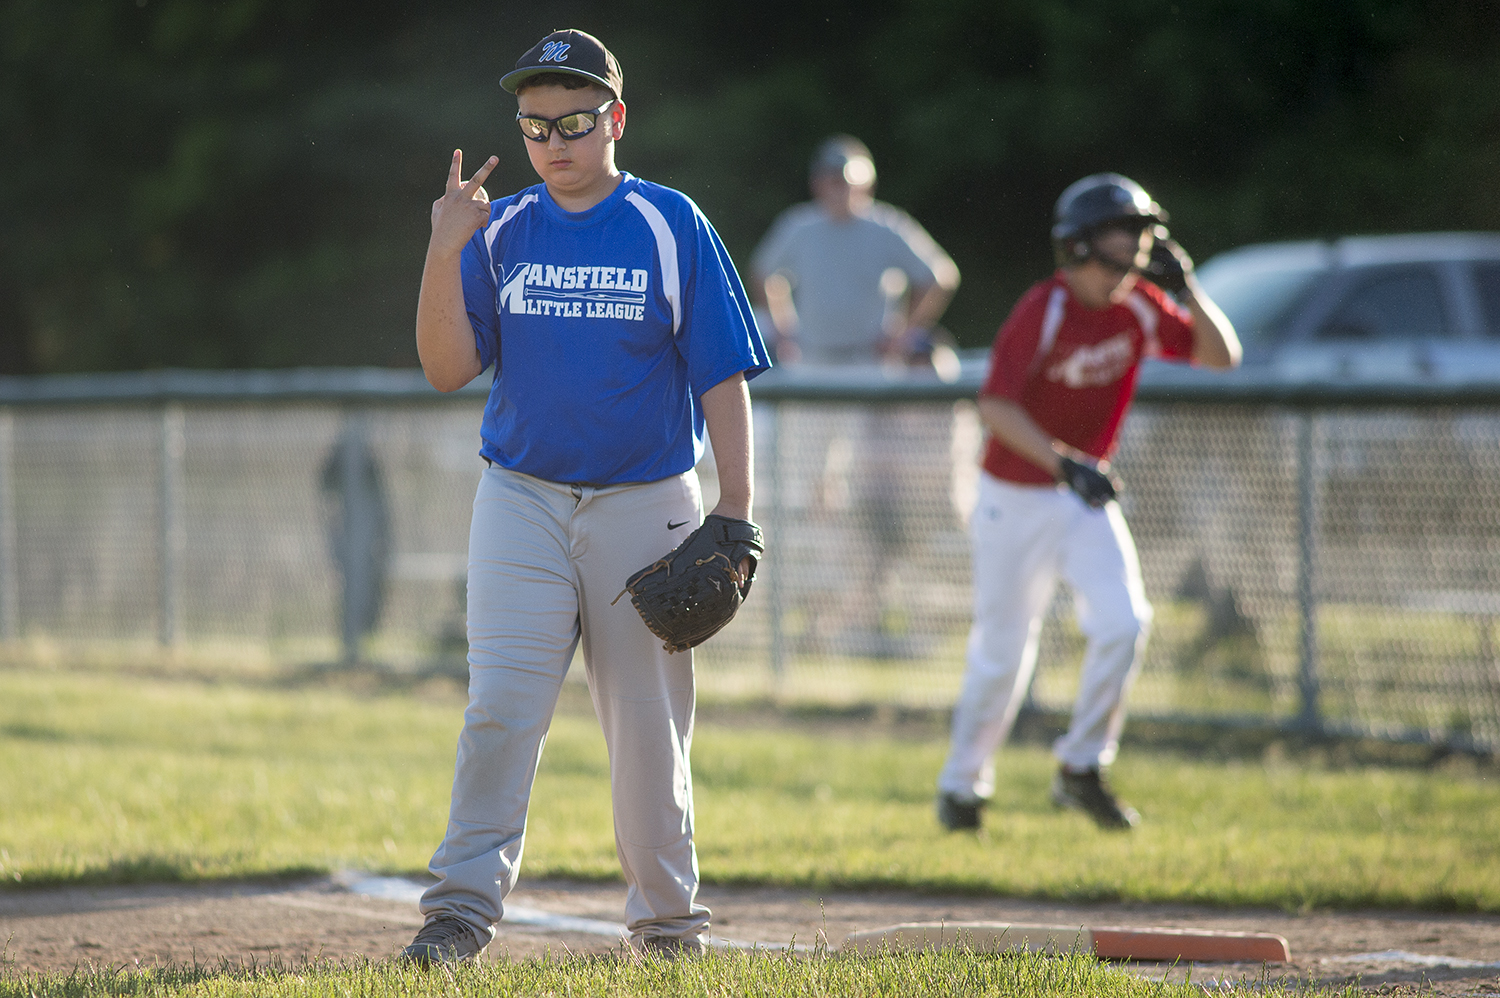 20160531MansfieldLittleLeague052915k.jpg